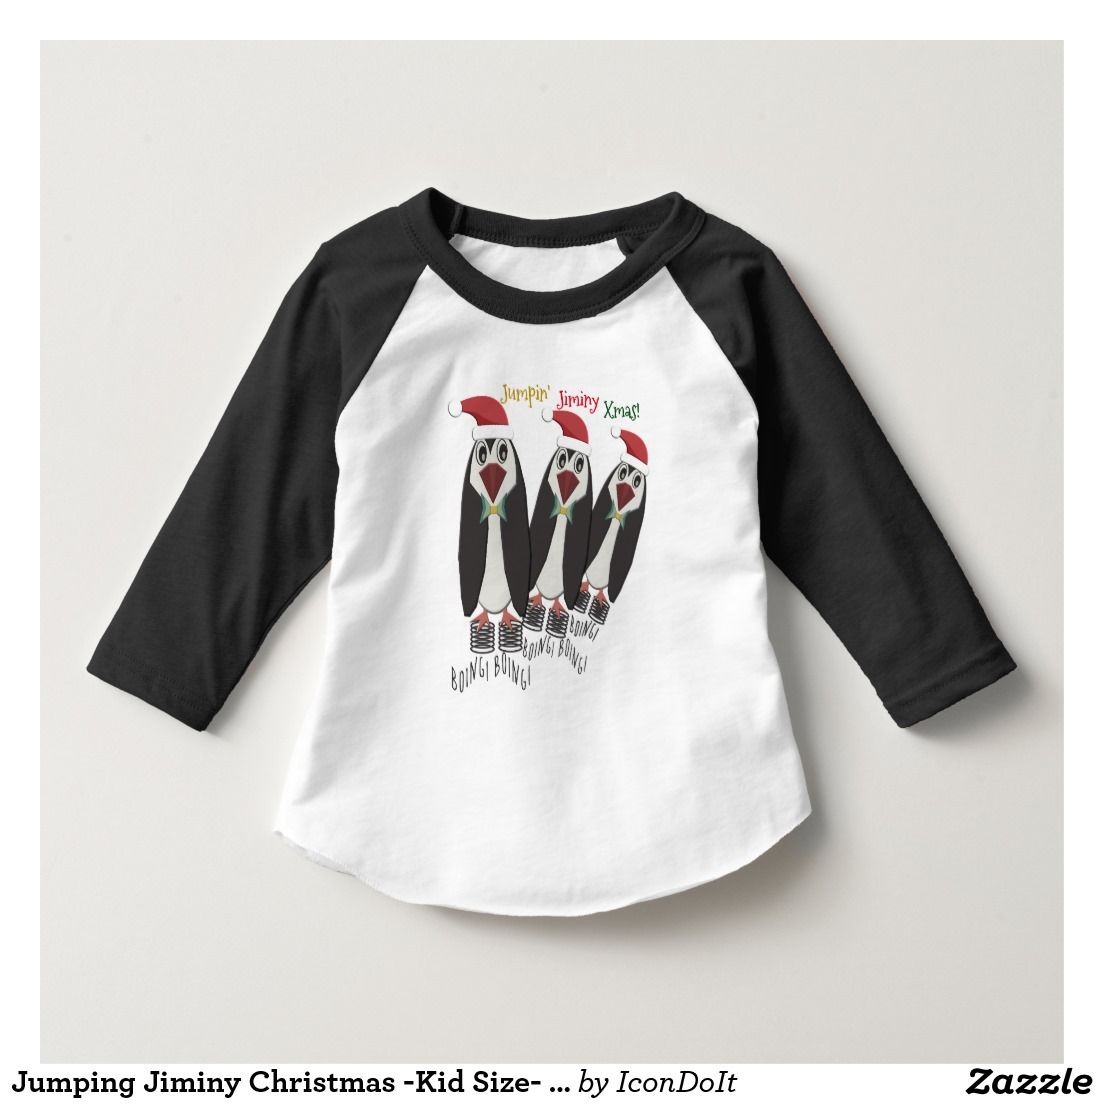 """Jumping Jiminy #Christmas - #Kid_Size- #Funny_Penguins_T-Shirt - Get your kids in the holiday spirit w/ this snazzy black & white baseball style shirt featuring a trio of cute penguins dressed in their Santa Hats, bow ties, and (literally!) a spring in their step. Captions surrounding their super strength coiled spring shoes read """"Boing! Boing!"""" in black. Top caption (in gold, red & green) reads """"Jumpin' Jiminy Xmas!"""" This #funny original design is by digital artist, Leslie Sigal Javorek."""